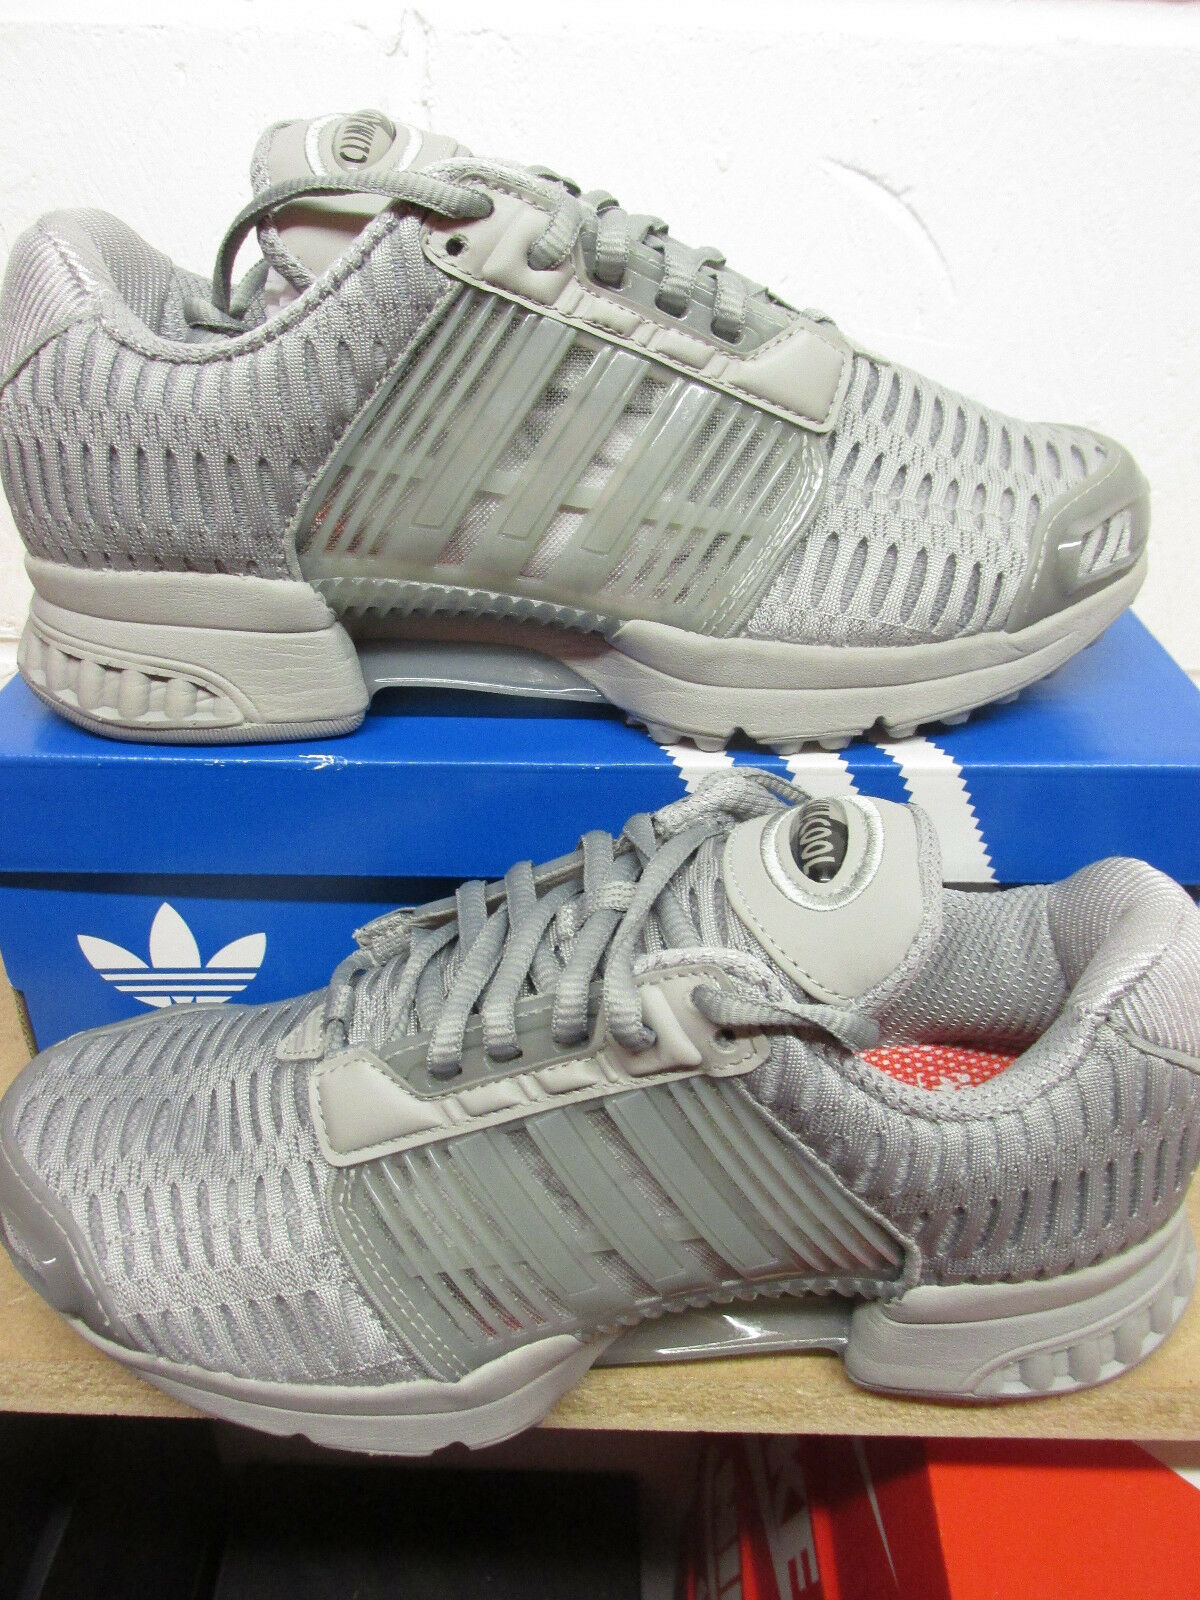 Adidas Originals Clima Sneakers Cool 1 Mens Running Trainers BA8577 Sneakers Clima Shoes cbe9d6